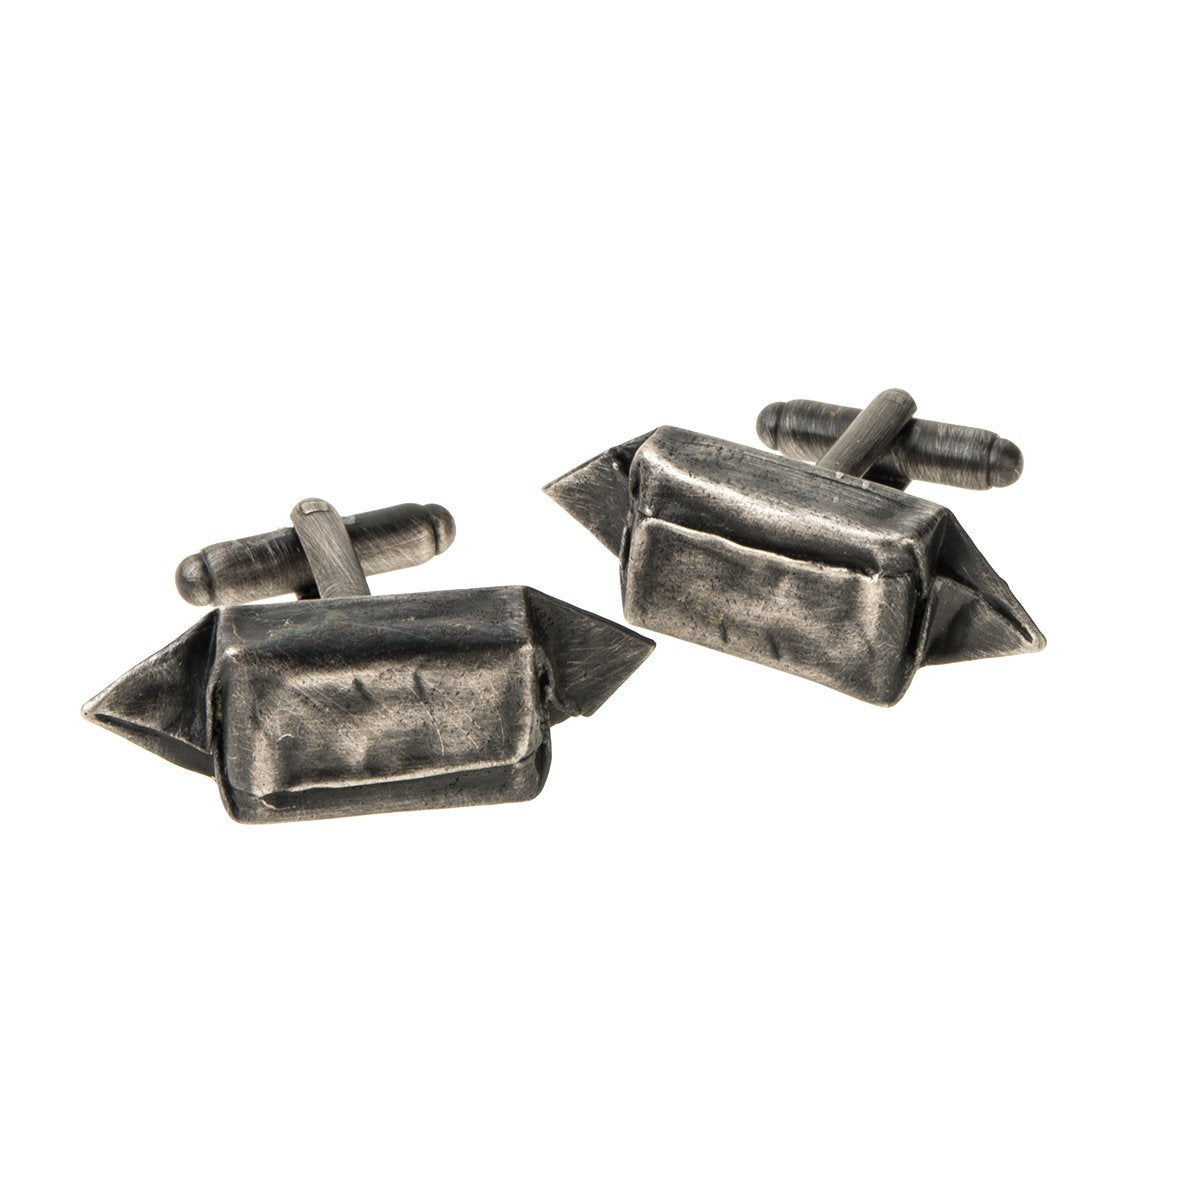 Cufflinks from Love collection - LM28-1